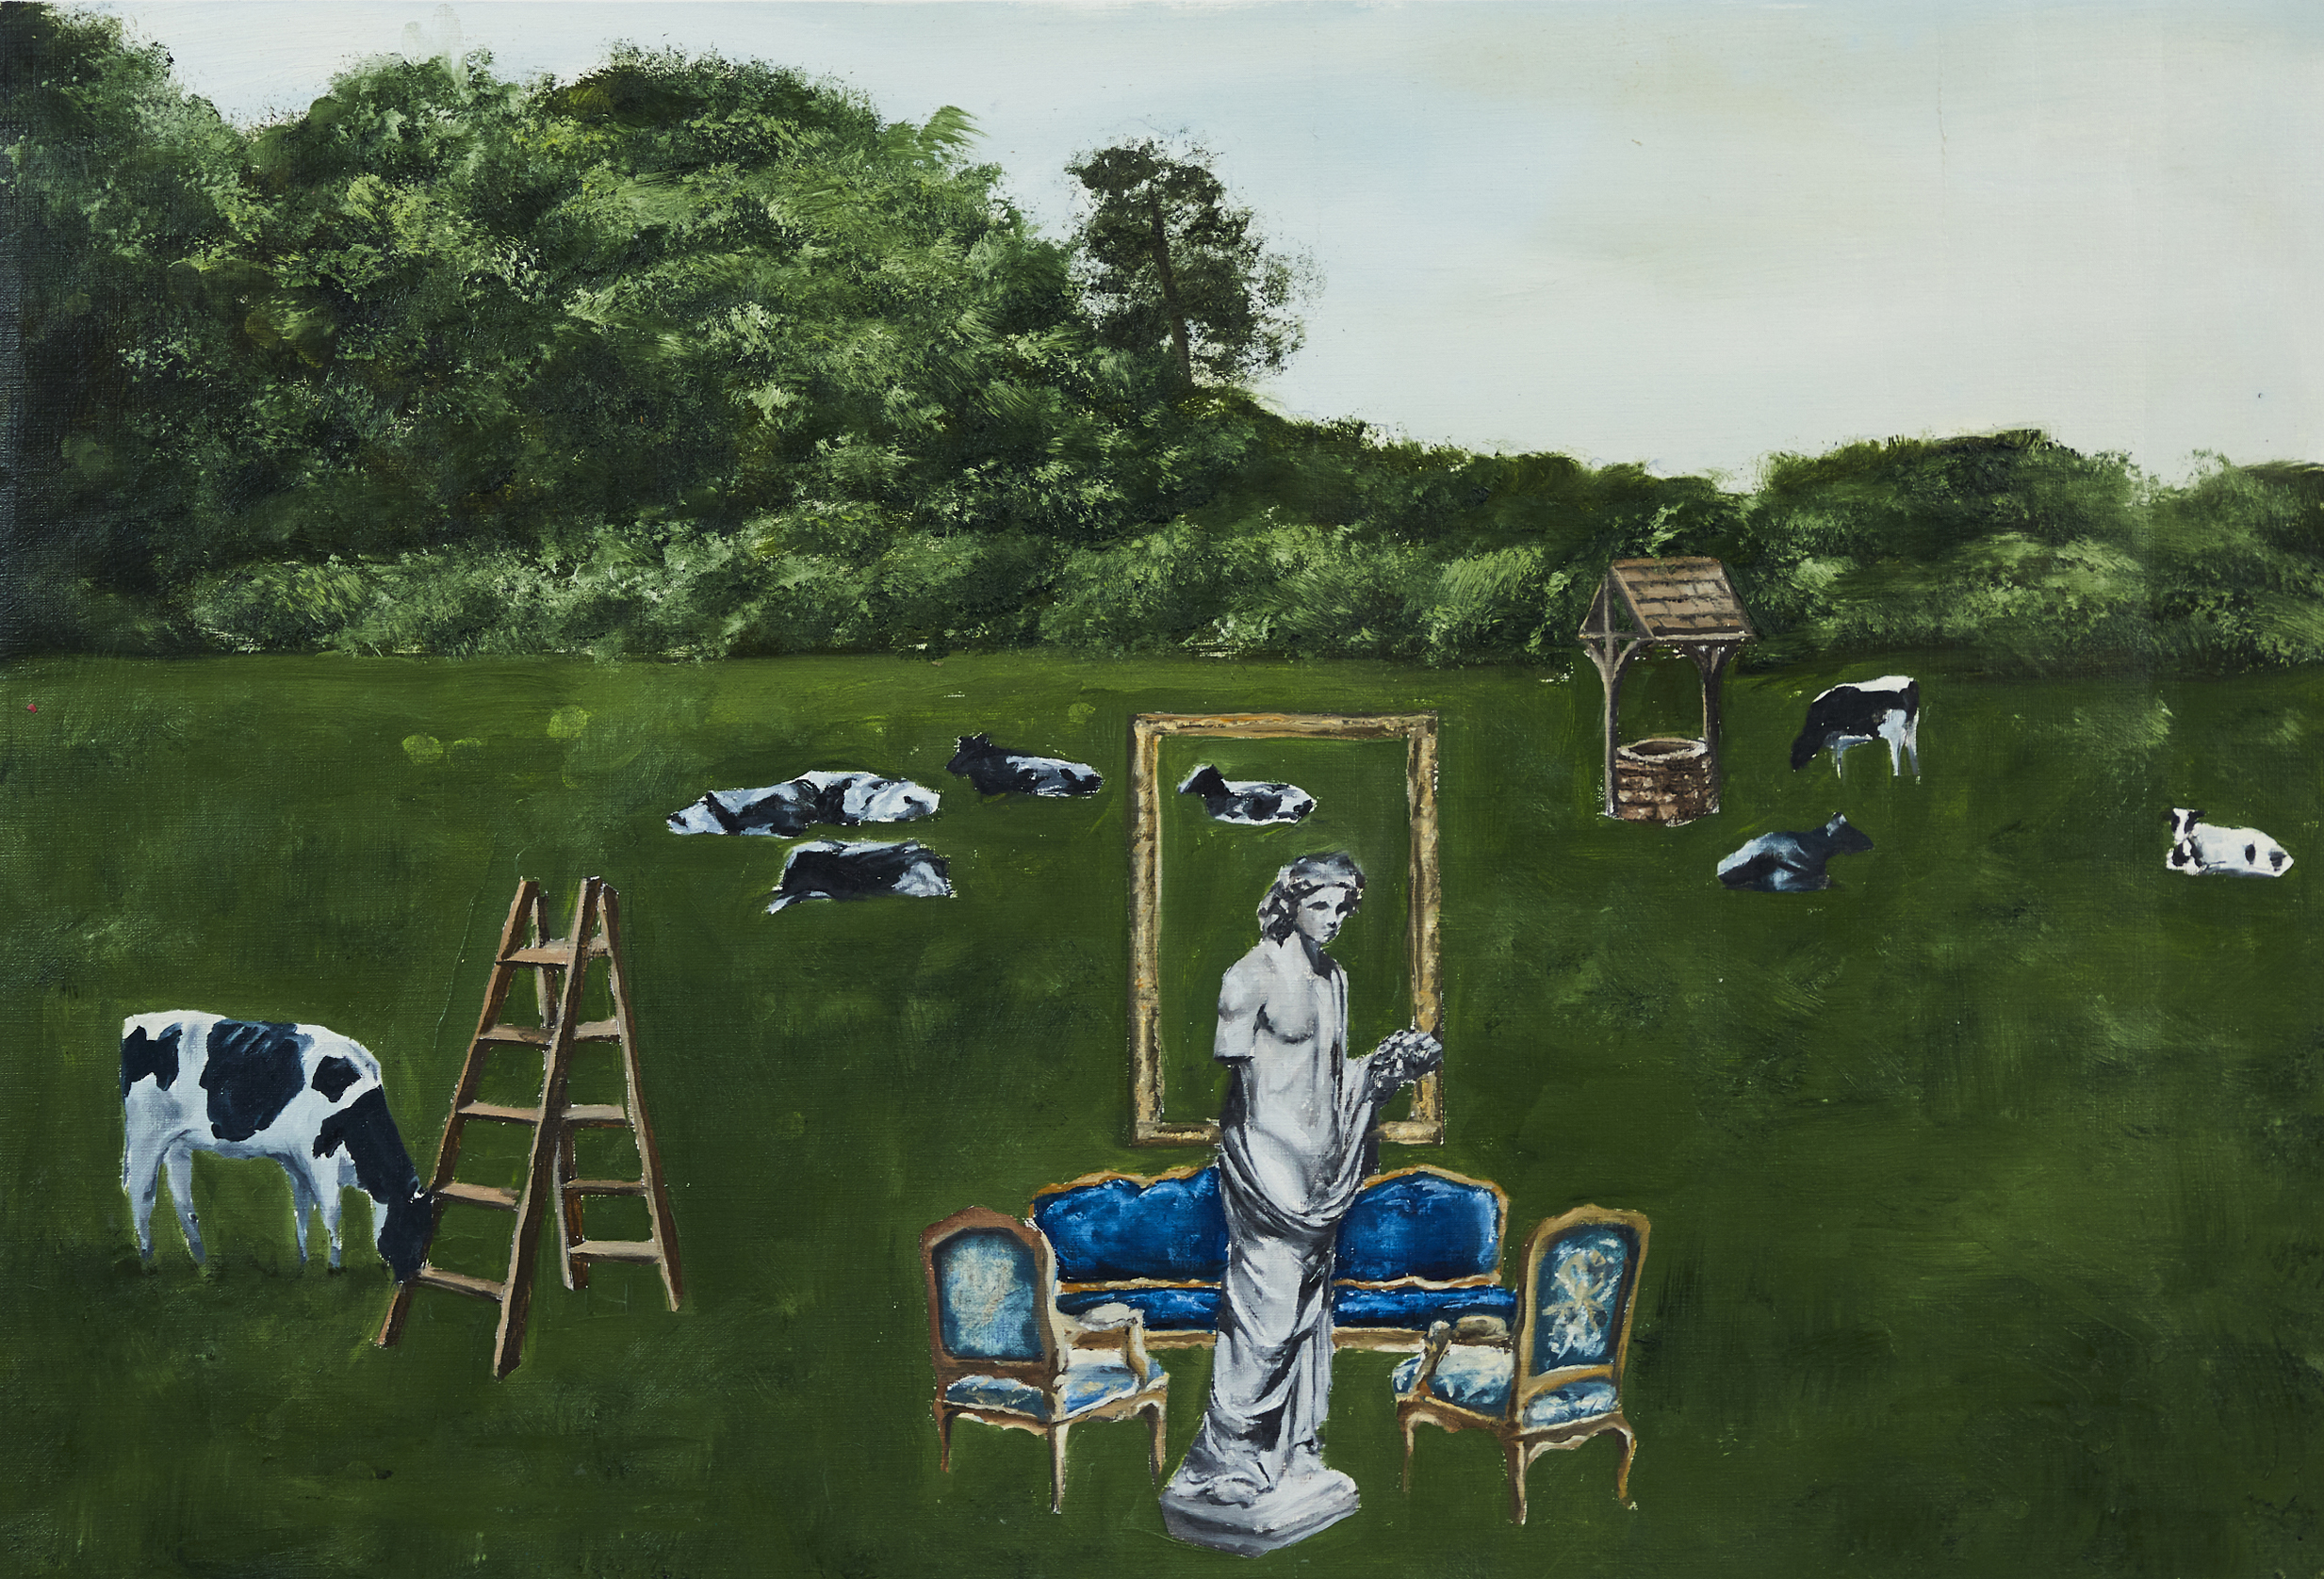 Conceptually I am Not Here      oil on canvas